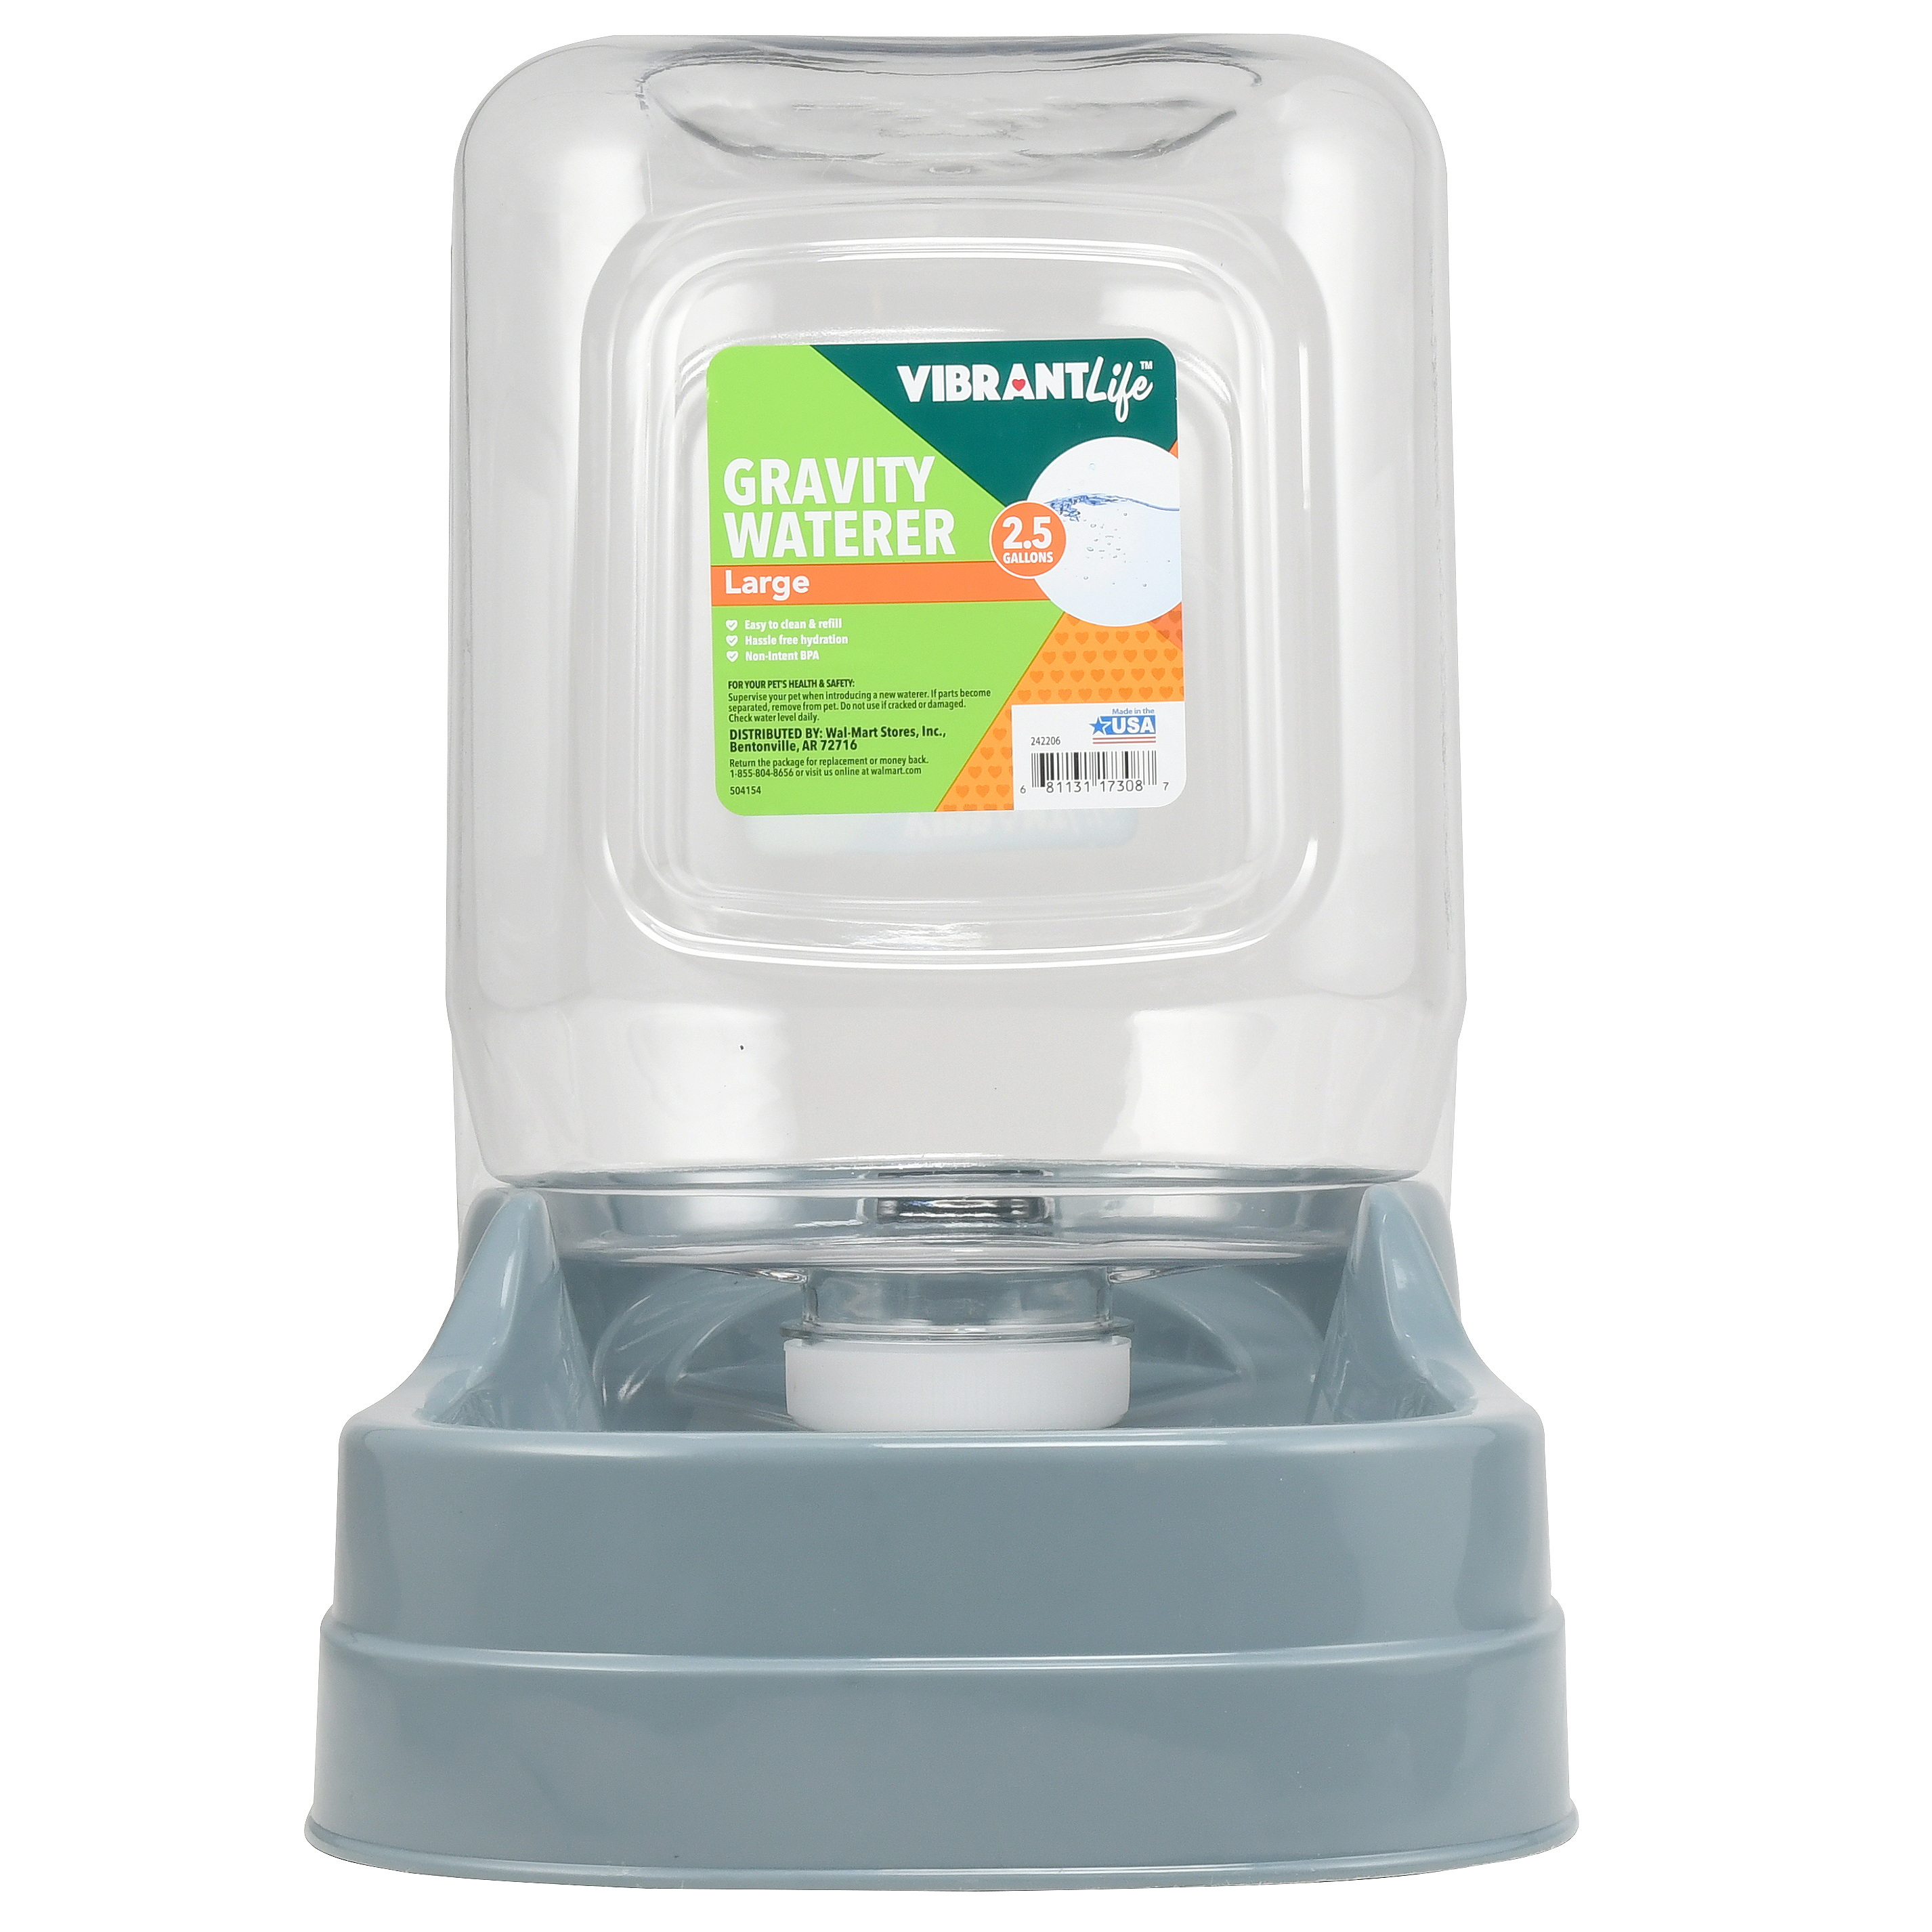 Vibrant Life Gravity Pet Waterer, Large, 2.5 Gal